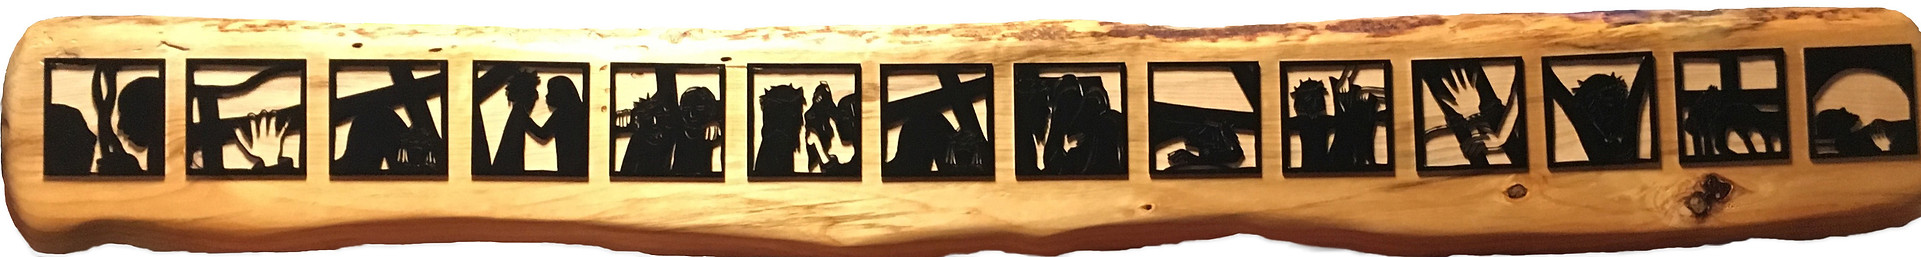 Stations of the Cross DESK Cutout